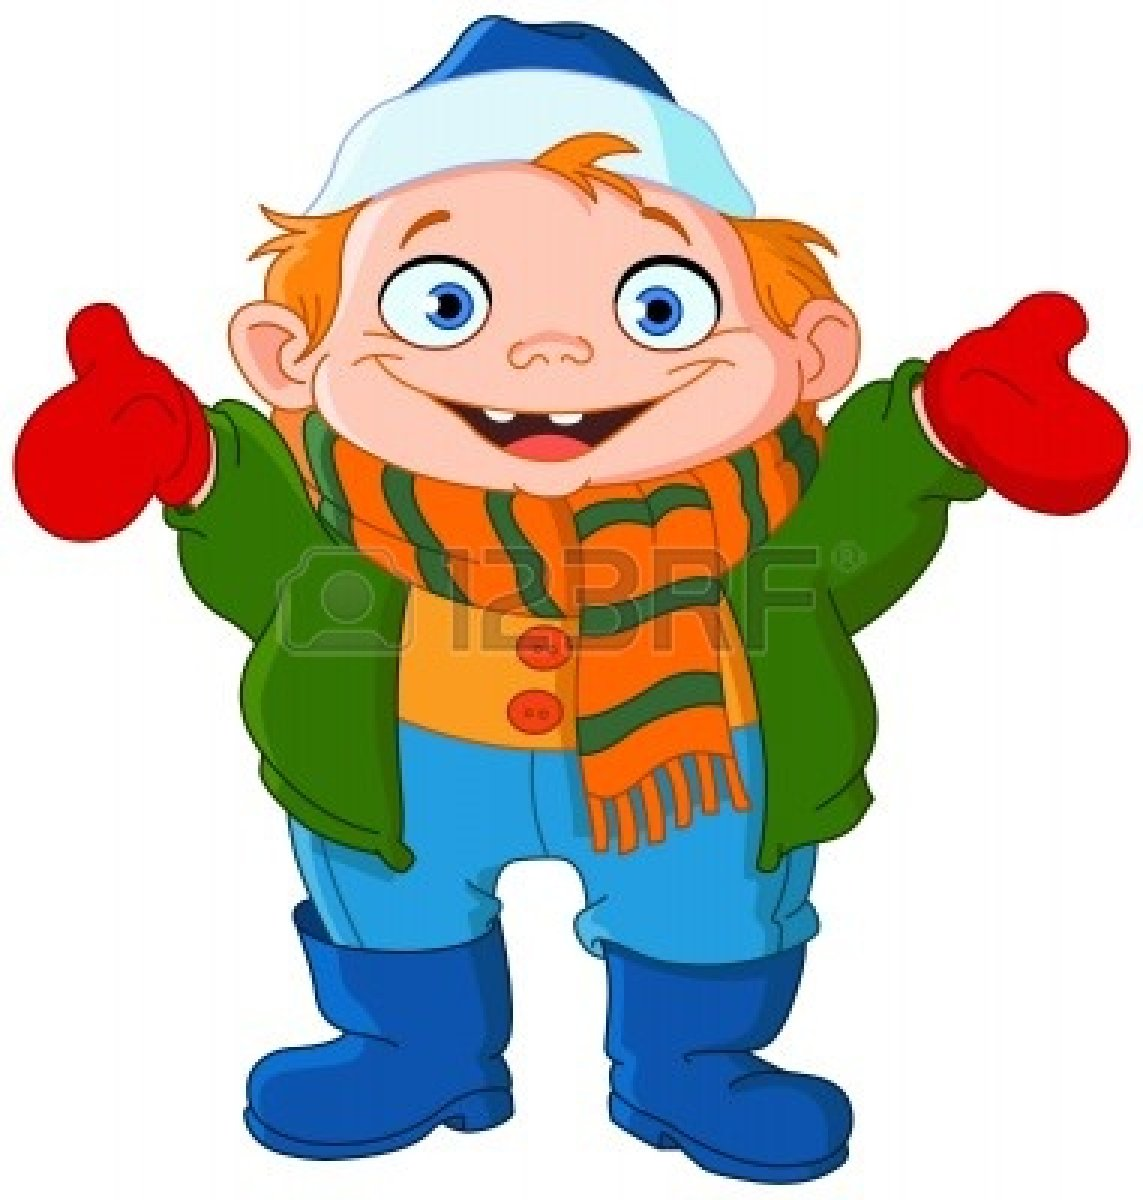 Guy in winter clothes clipart picture transparent library Winter Clothes Clipart | Free download best Winter Clothes Clipart ... picture transparent library